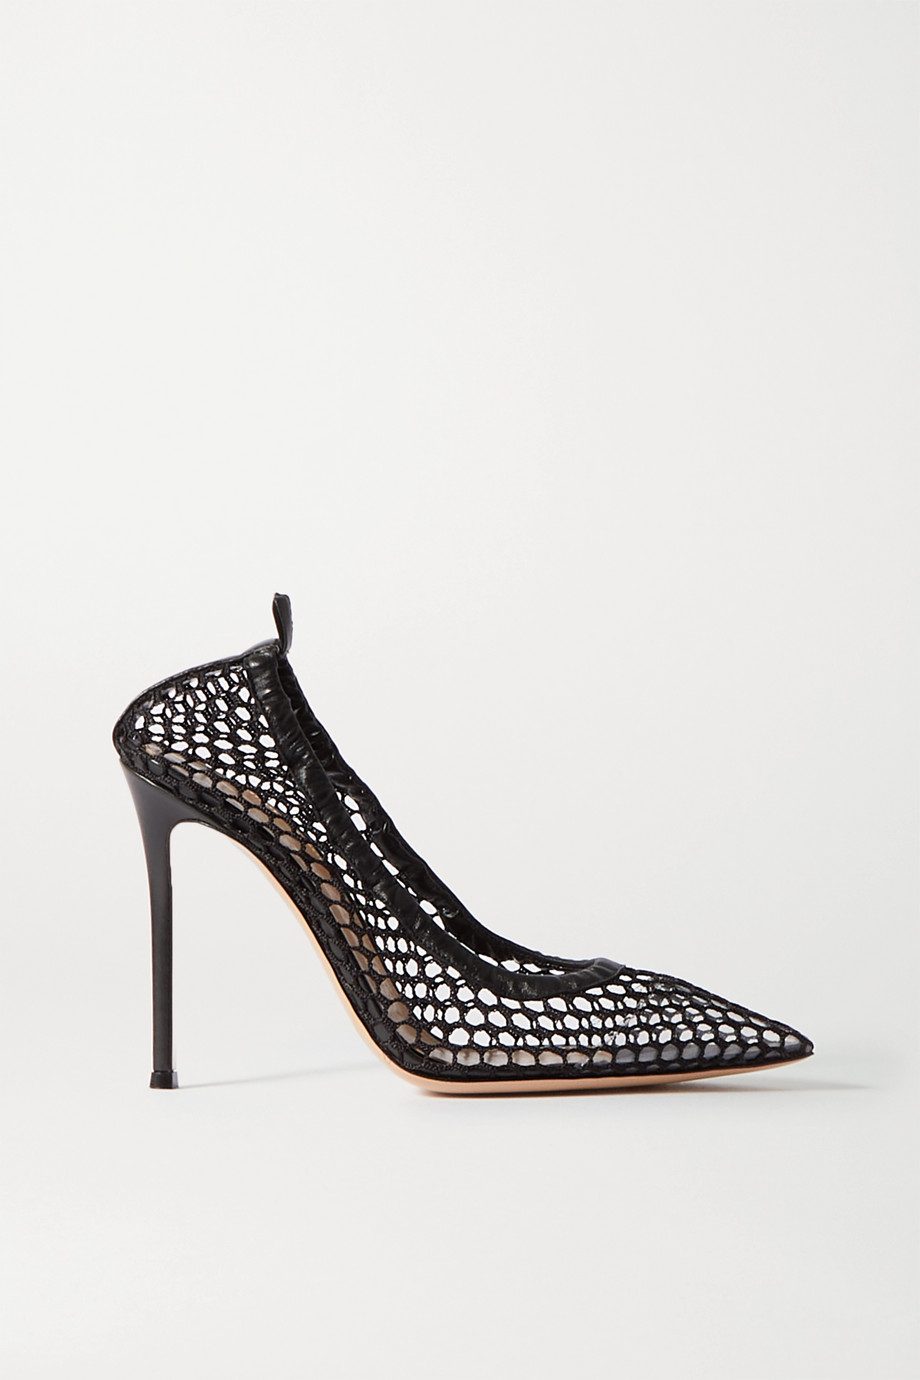 Gianvito Rossi 105 leather-trimmed fishnet pumps